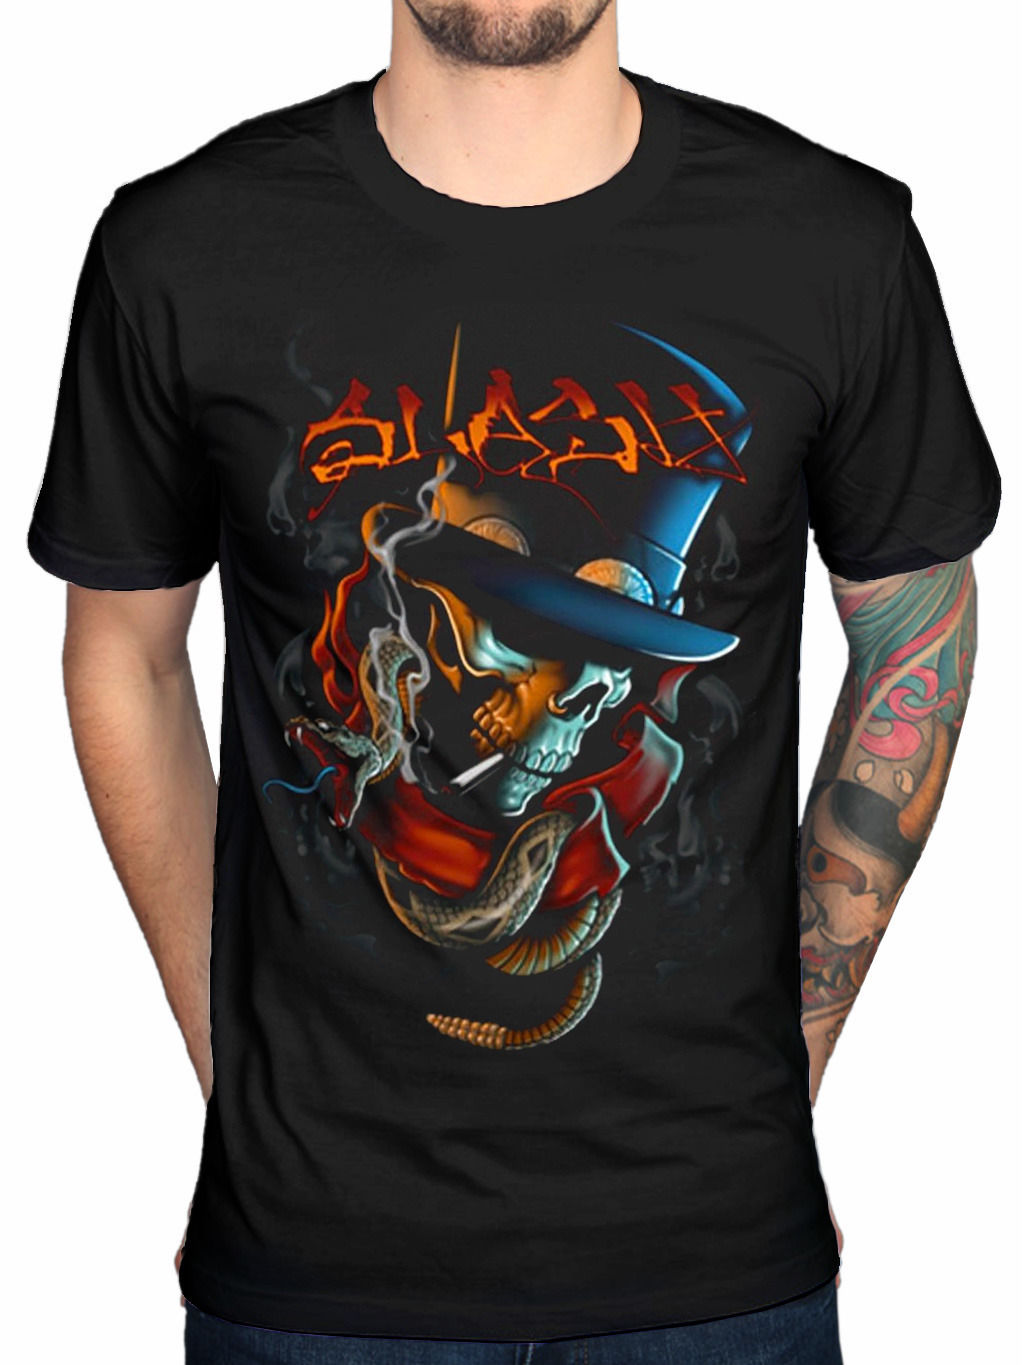 Slash Smoker T-Shirt World On Fire Apocalyptic Love Made In Stoke Rock